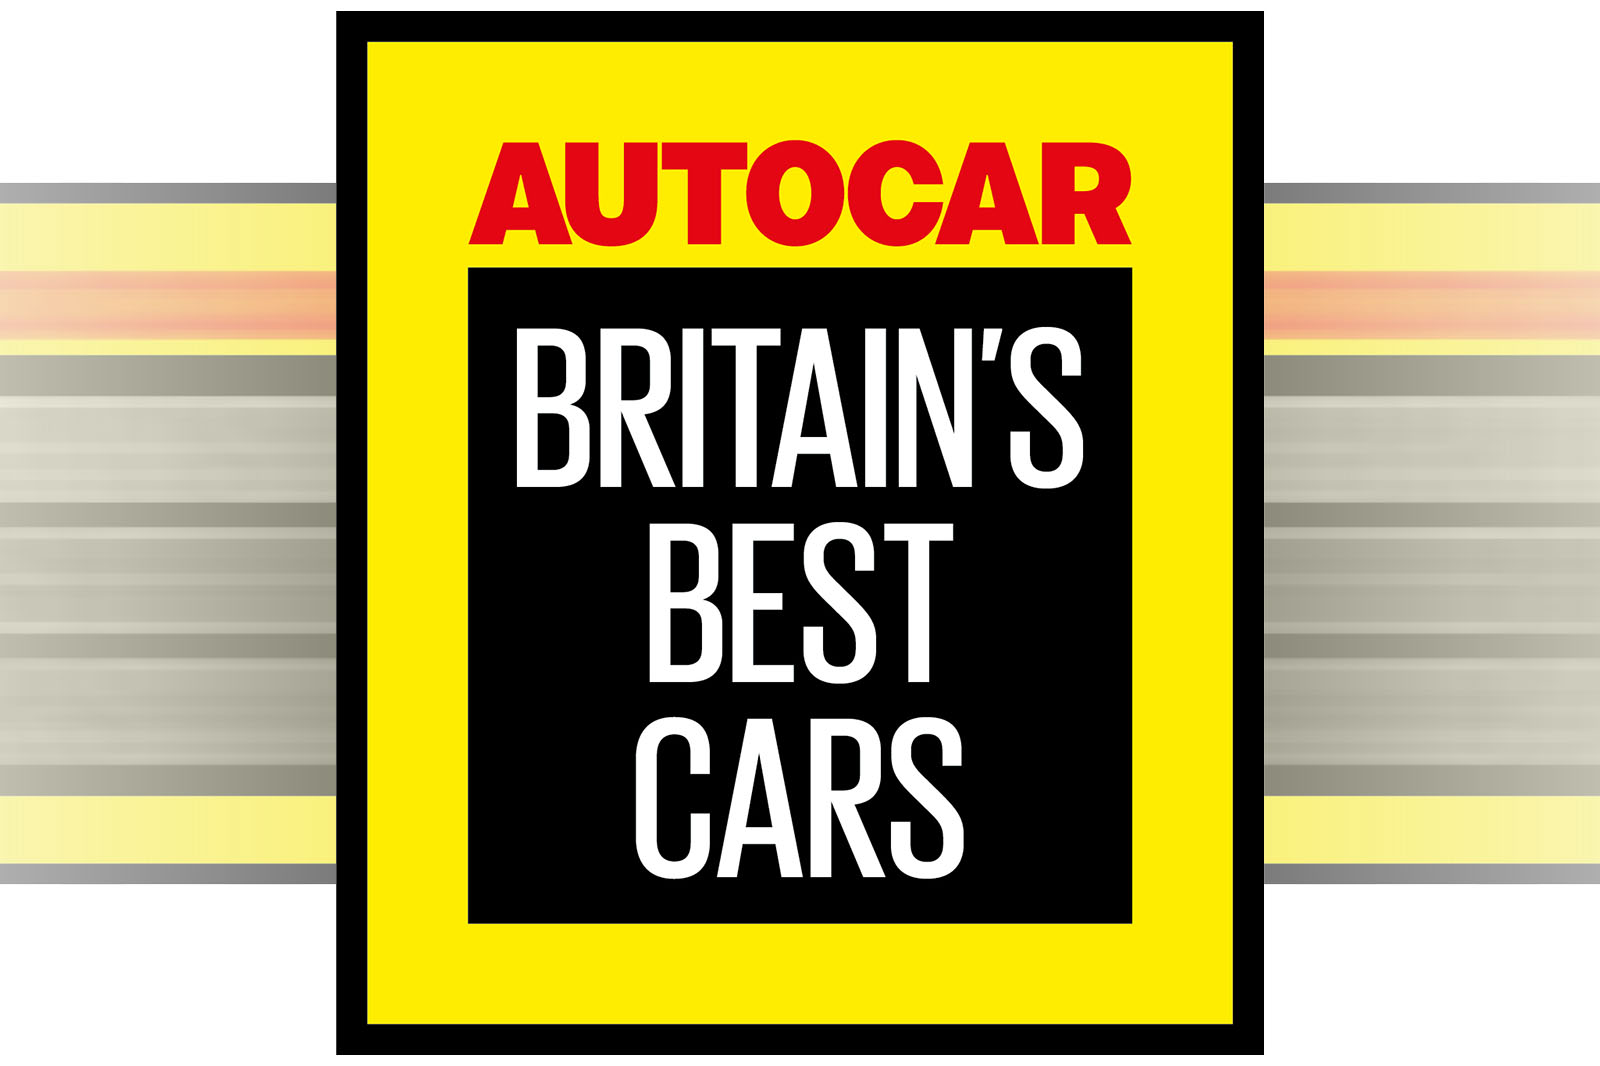 britains best cars main v2 rgb3  - Autocar launches new Britain's Best Car Awards - Autocar launches new Britain's Best Car Awards